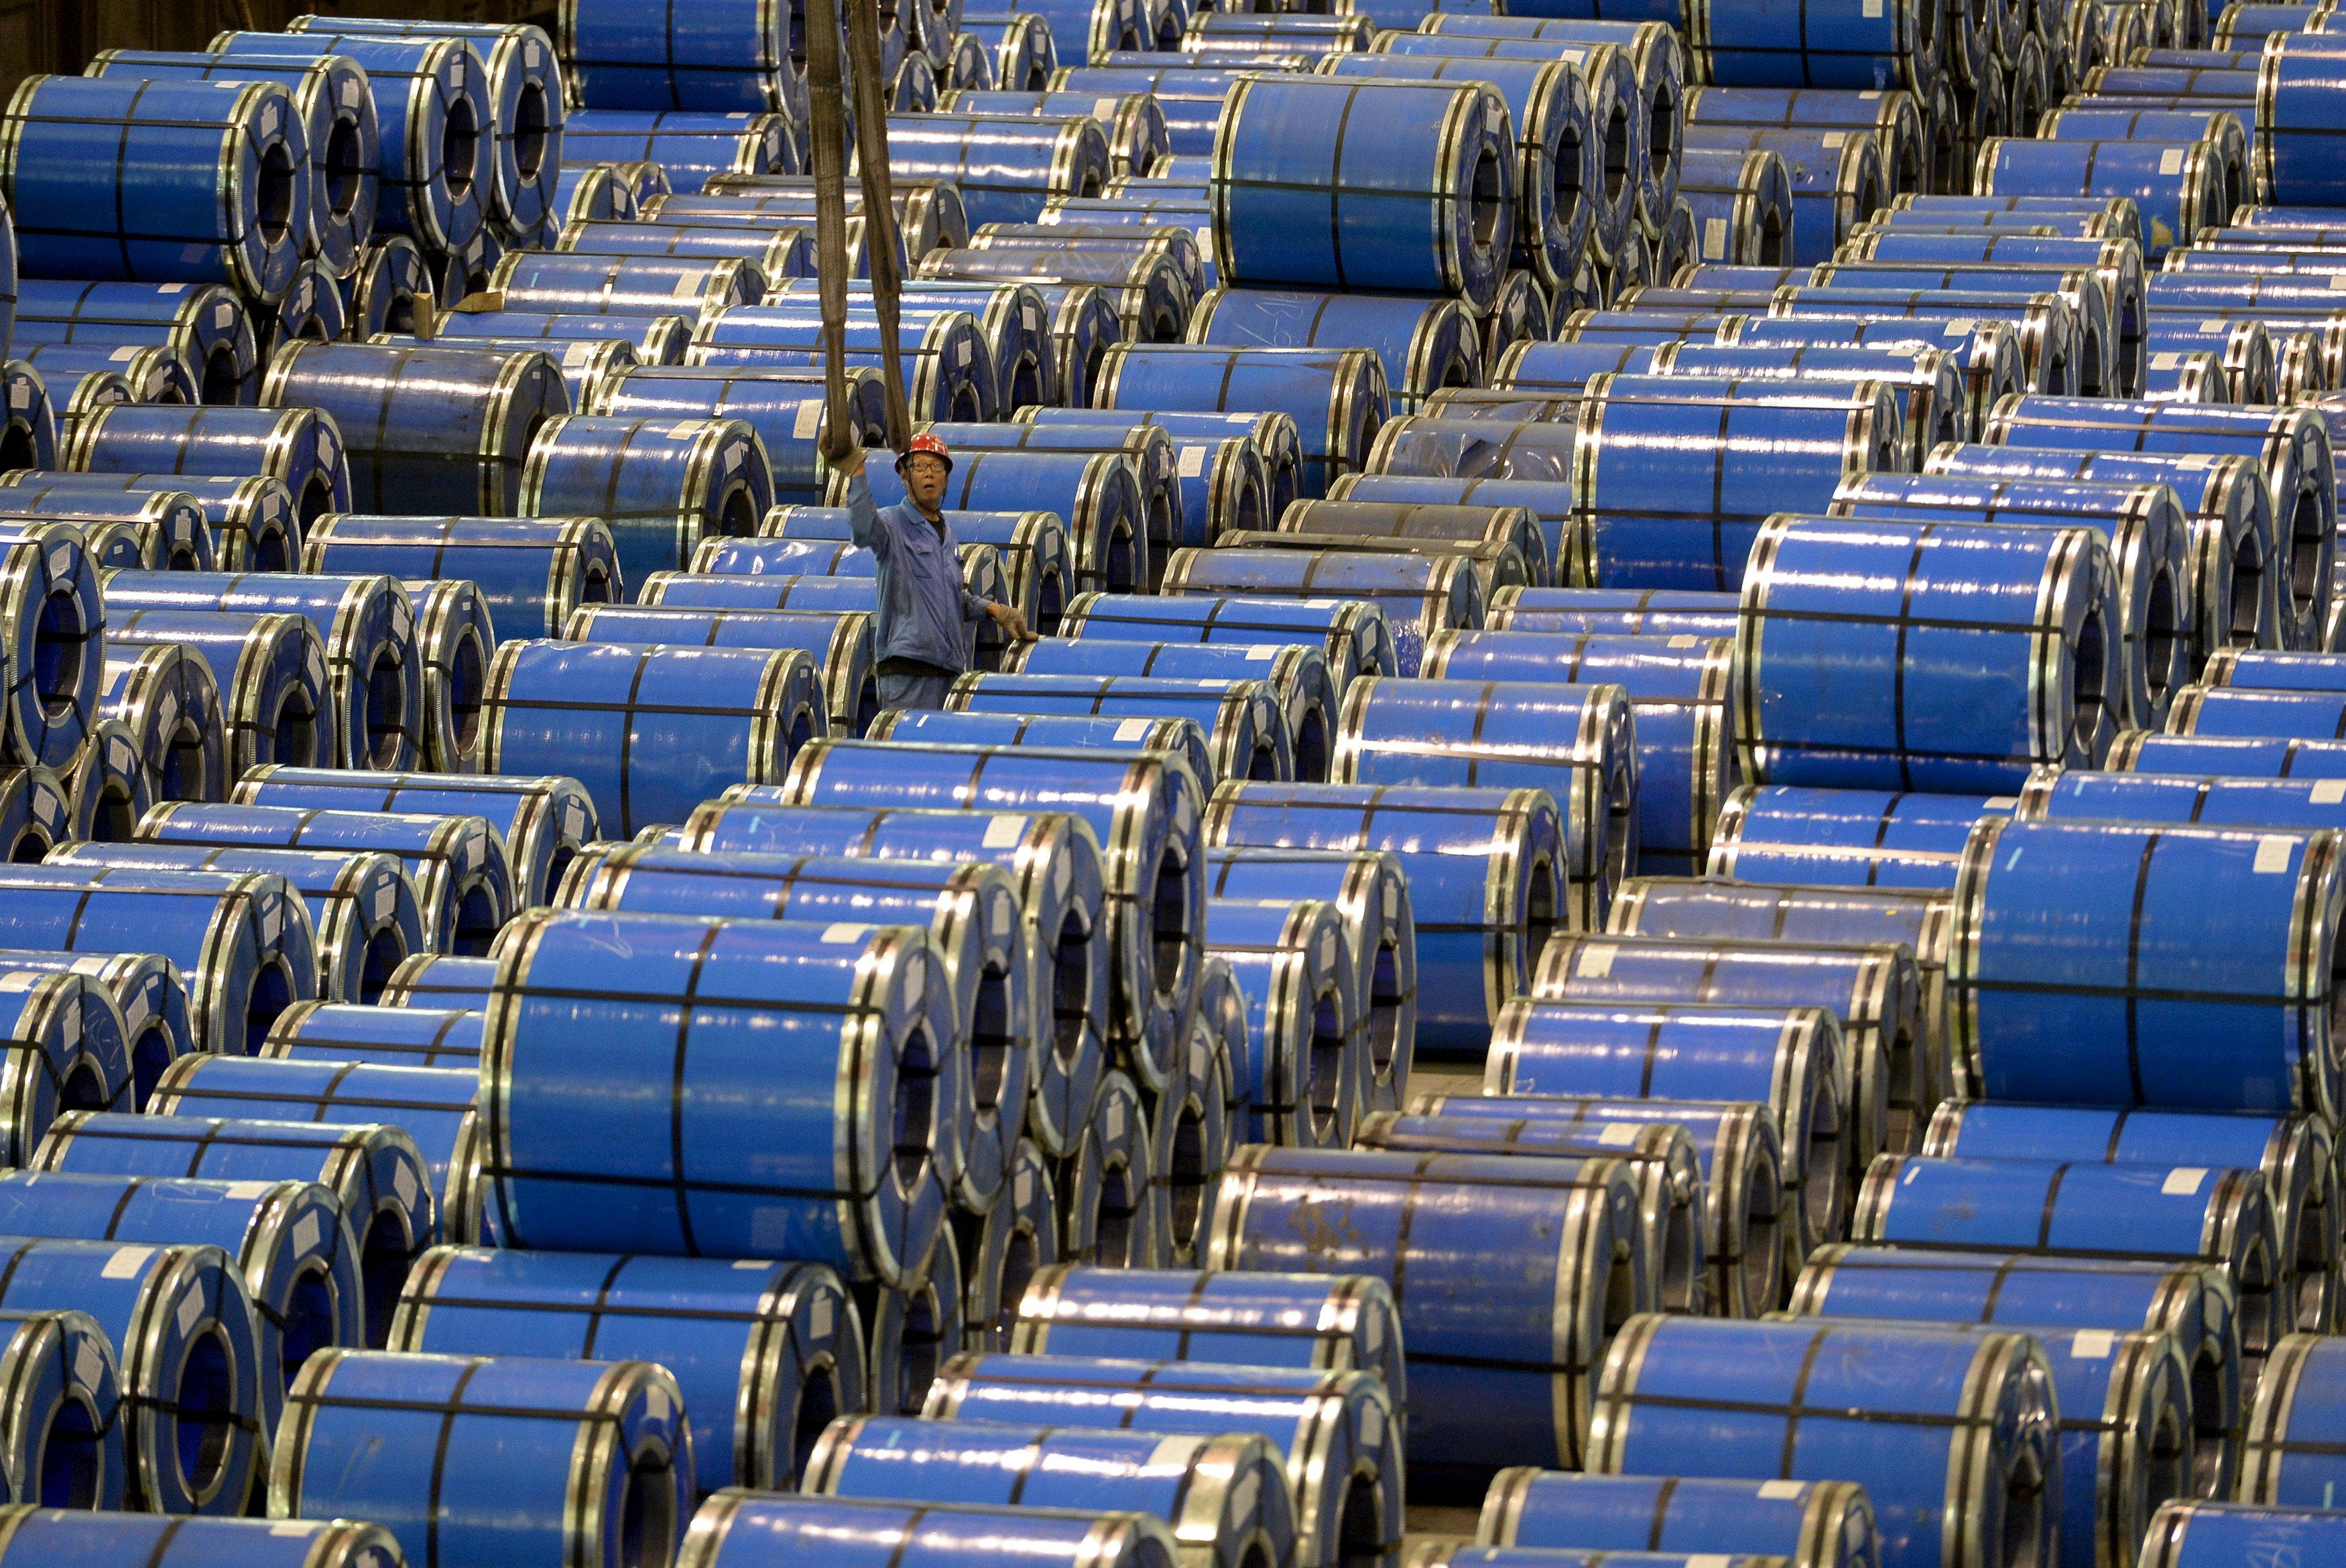 China probes stainless steel imports from Indonesia, EU, Japan